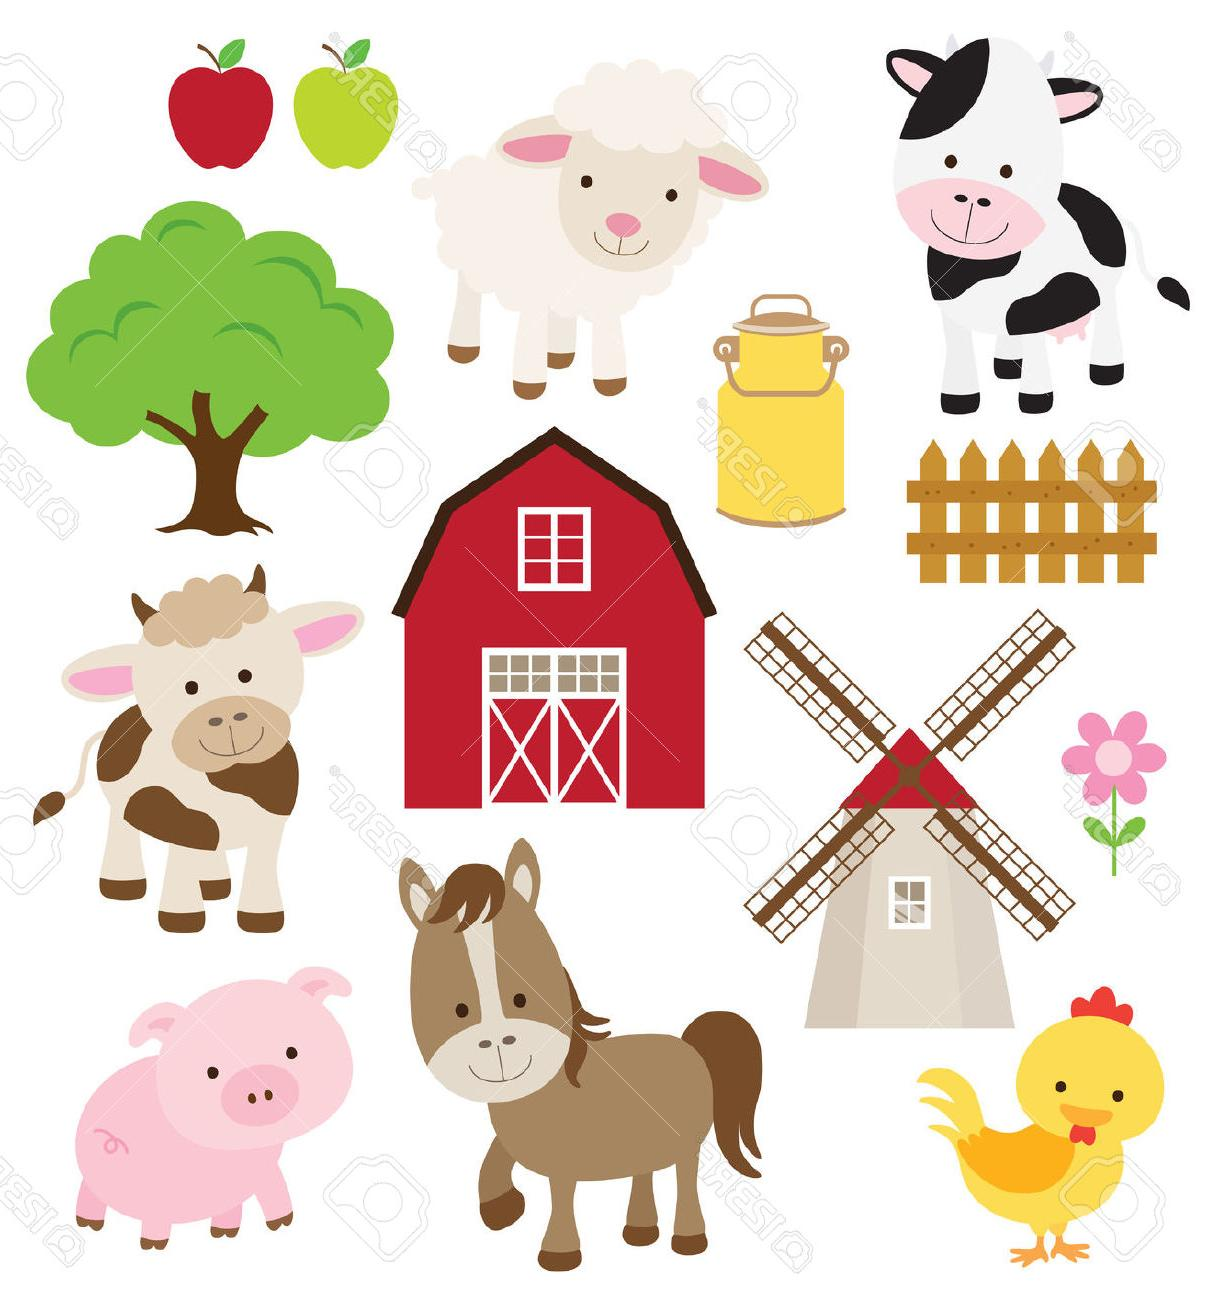 1219x1300 Best Free Vector Illustration Of Farm Animals And Related Items